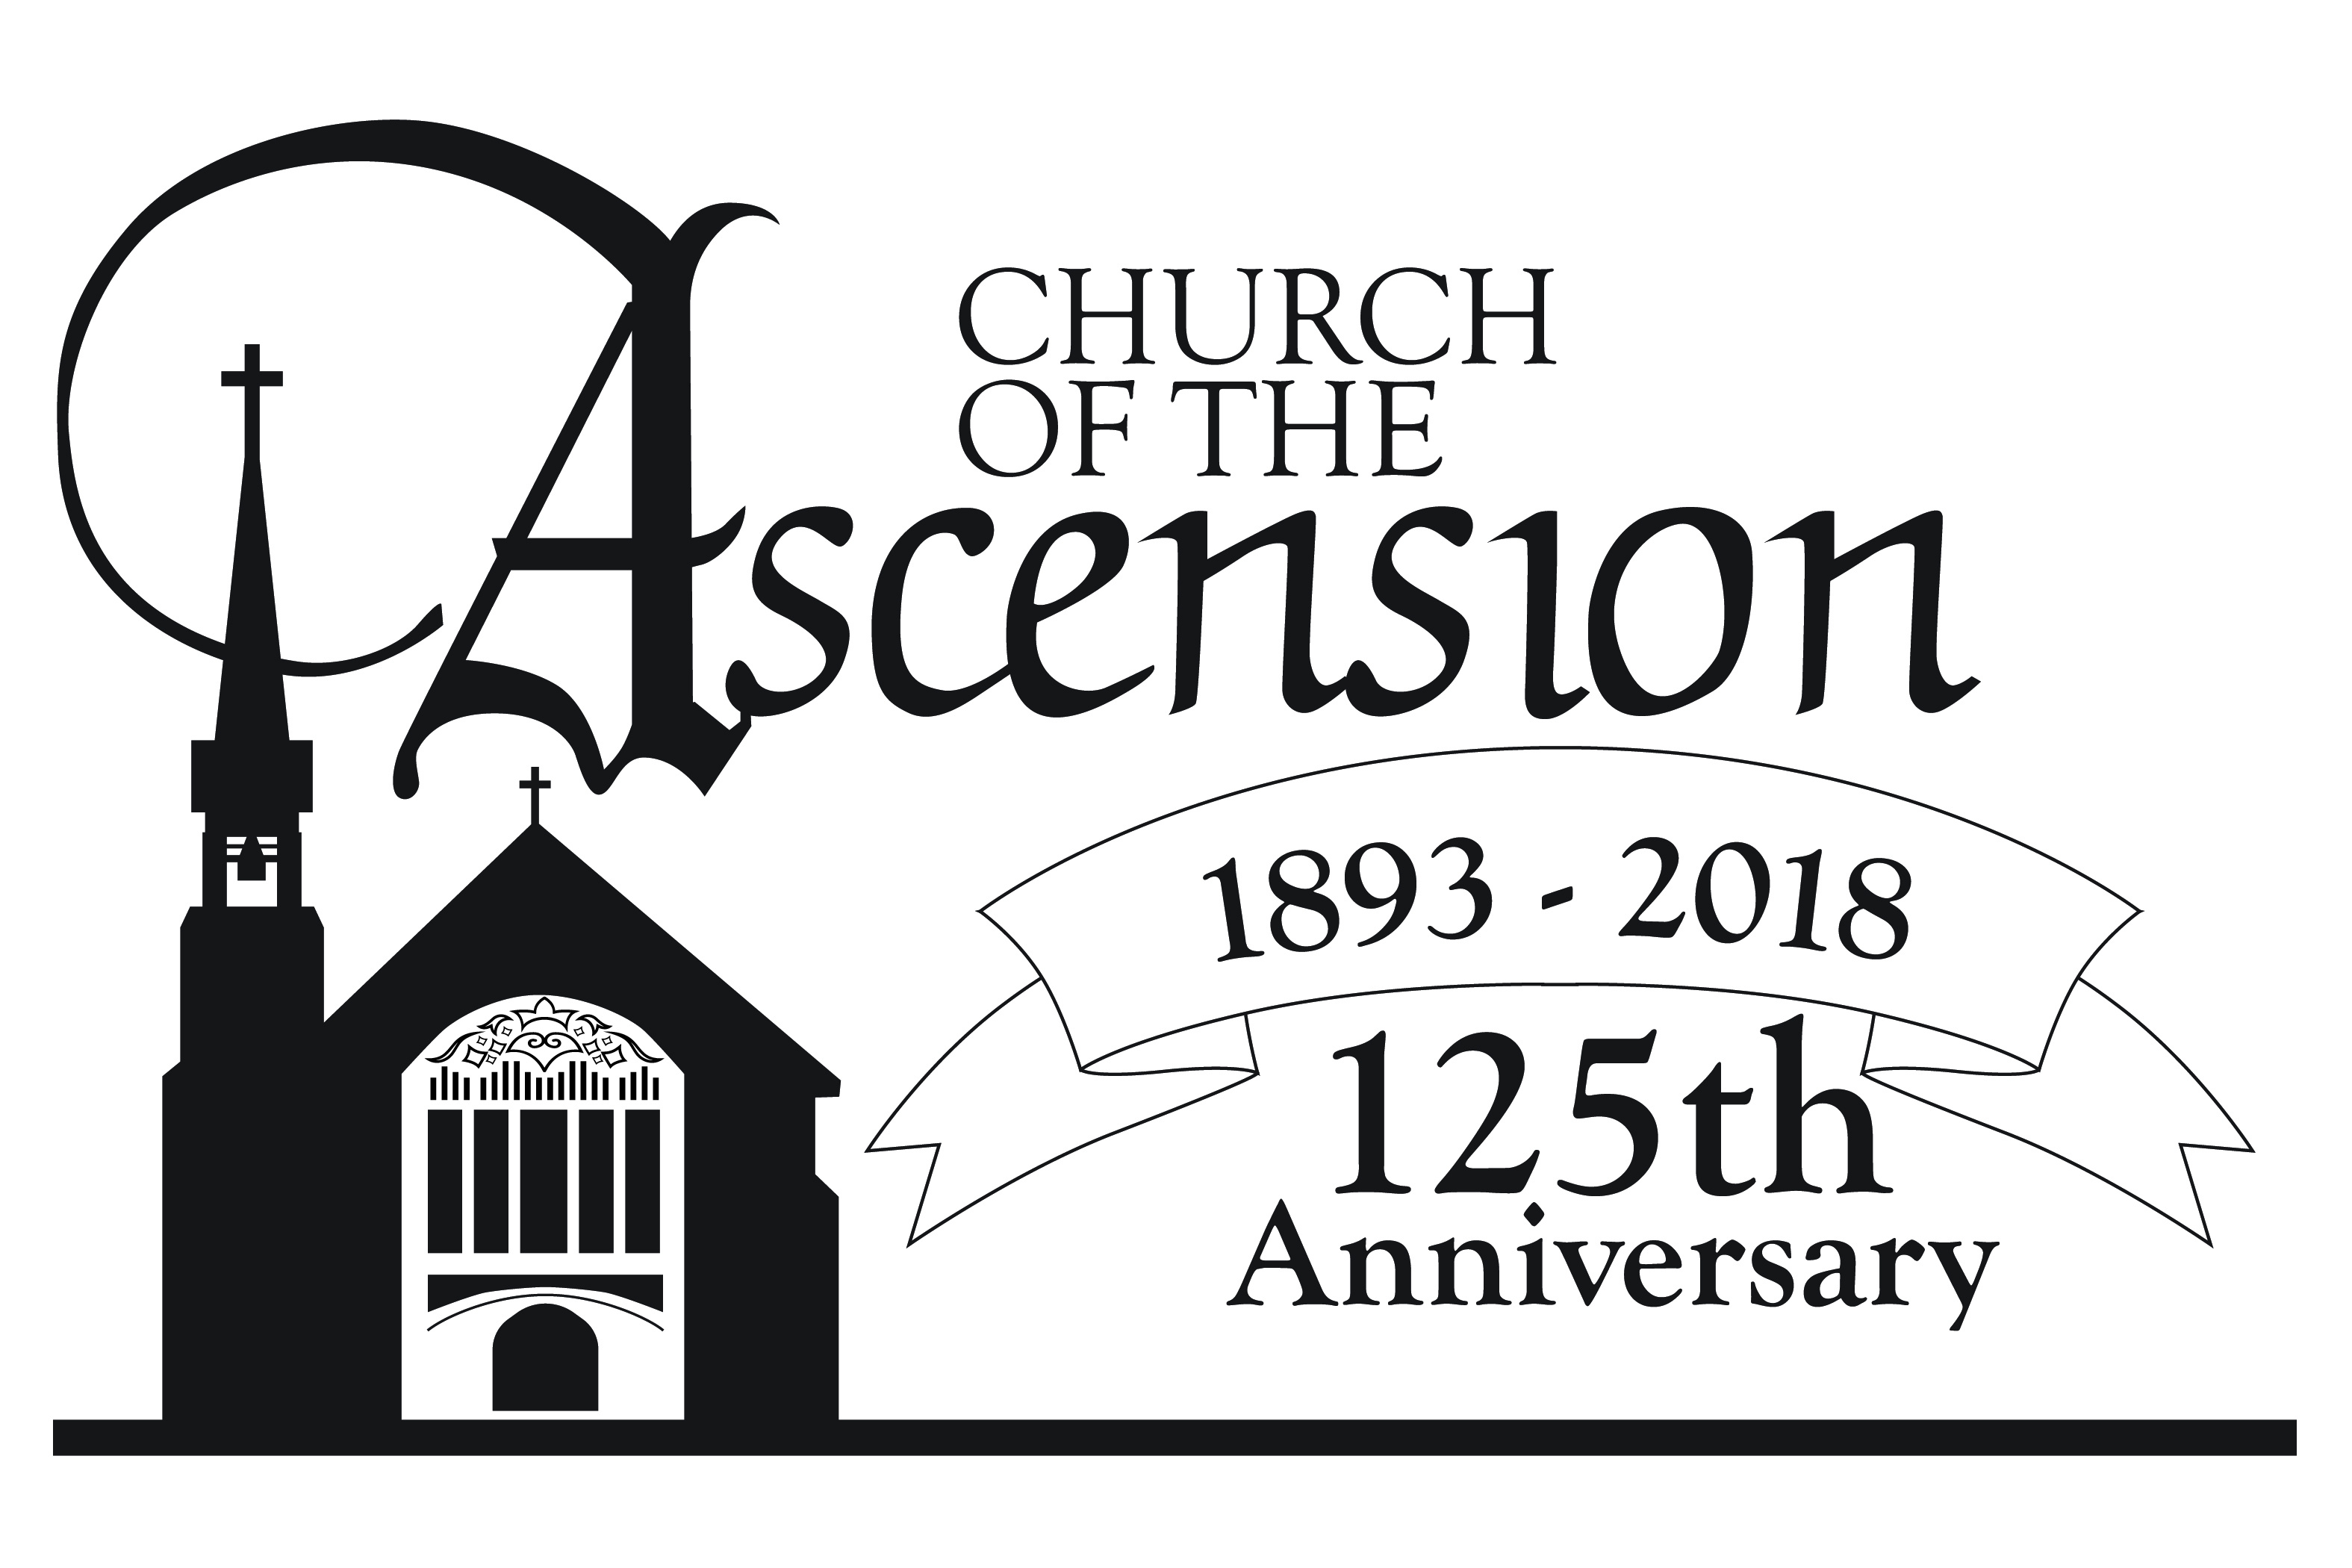 https://0901.nccdn.net/4_2/000/000/08a/2a7/The-Church-of-the-Ascension-01-3150x2100.jpg